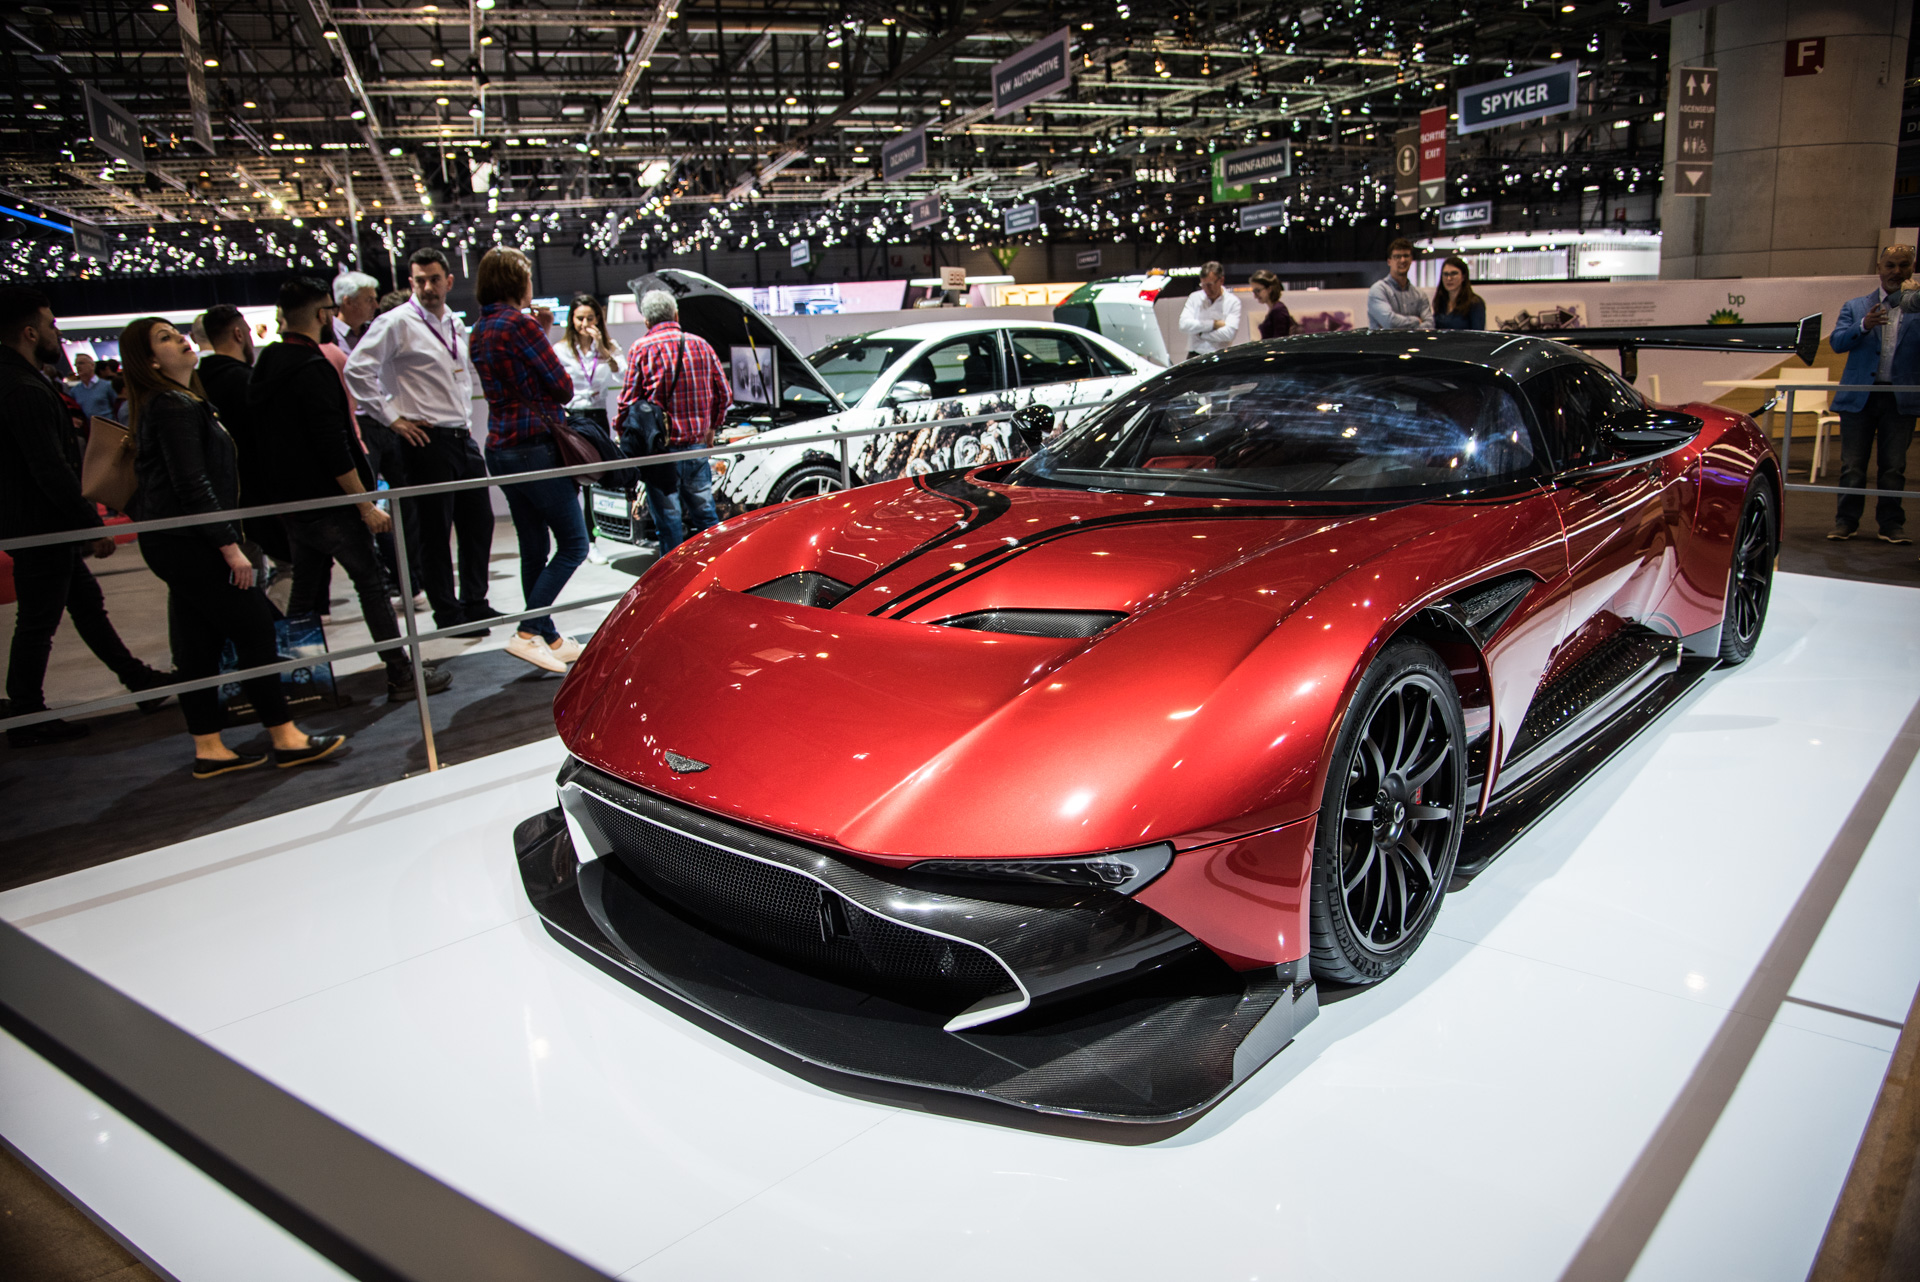 geneva-international-motor-show-igor-sinitsin-104